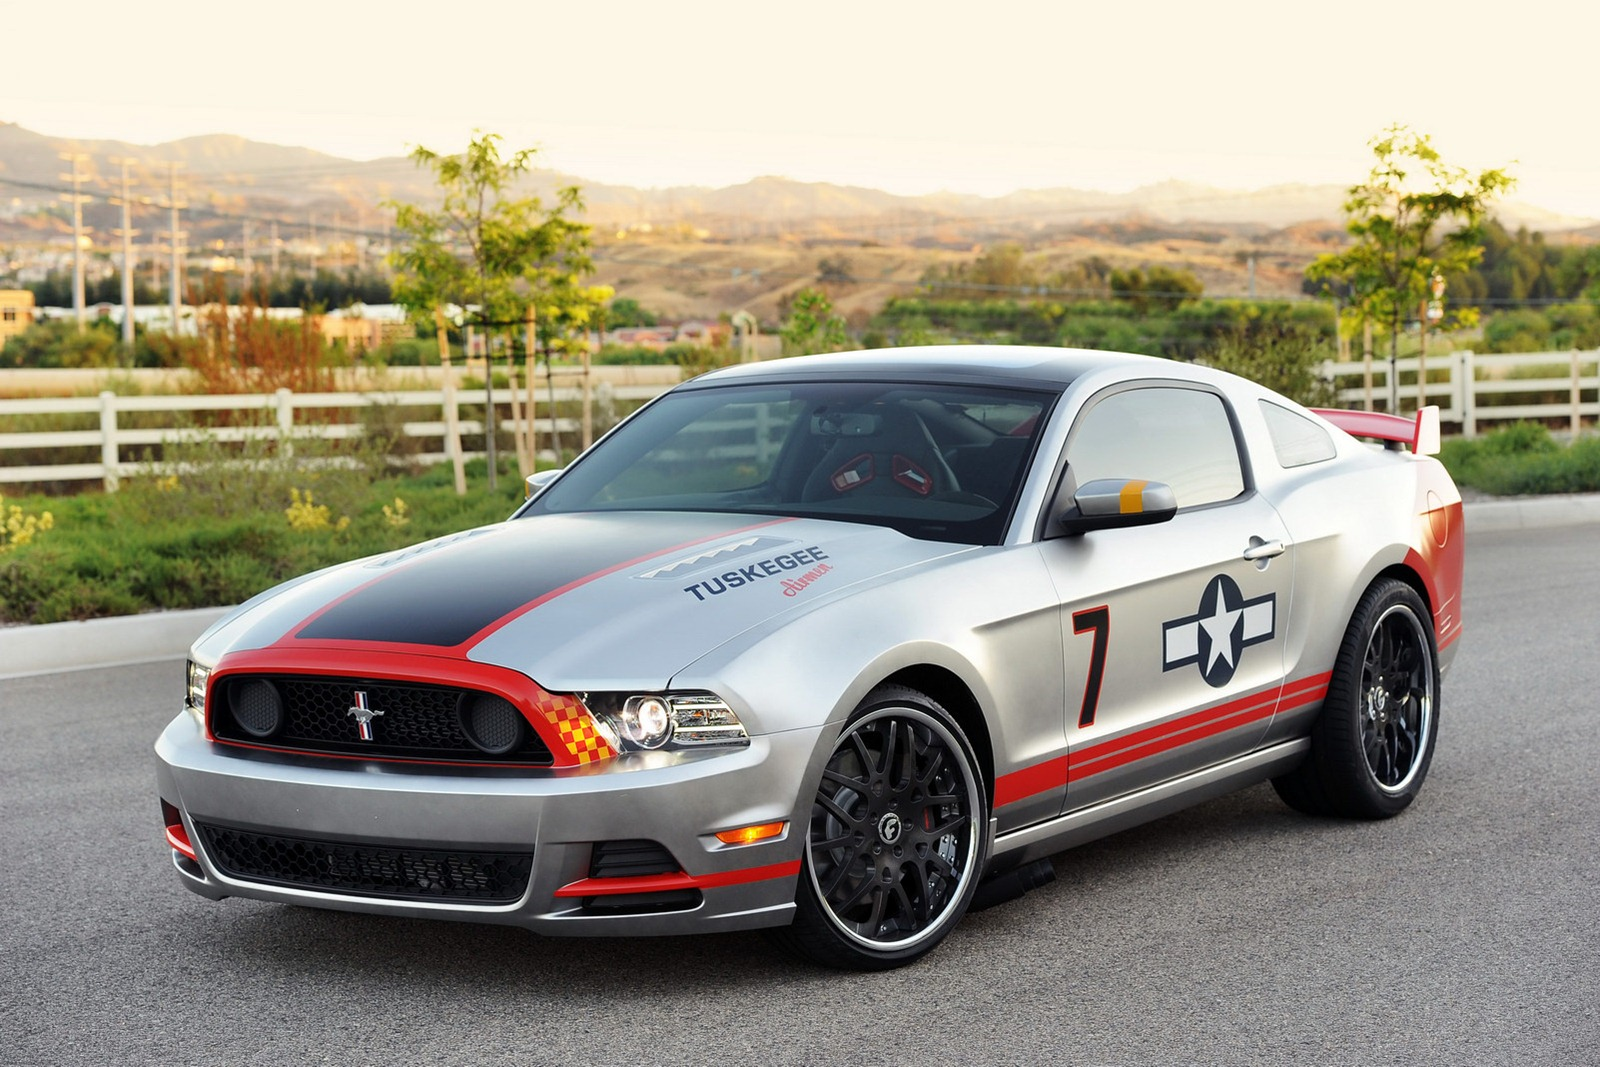 2013 ford mustang gt red tail fighter aircraft. Black Bedroom Furniture Sets. Home Design Ideas